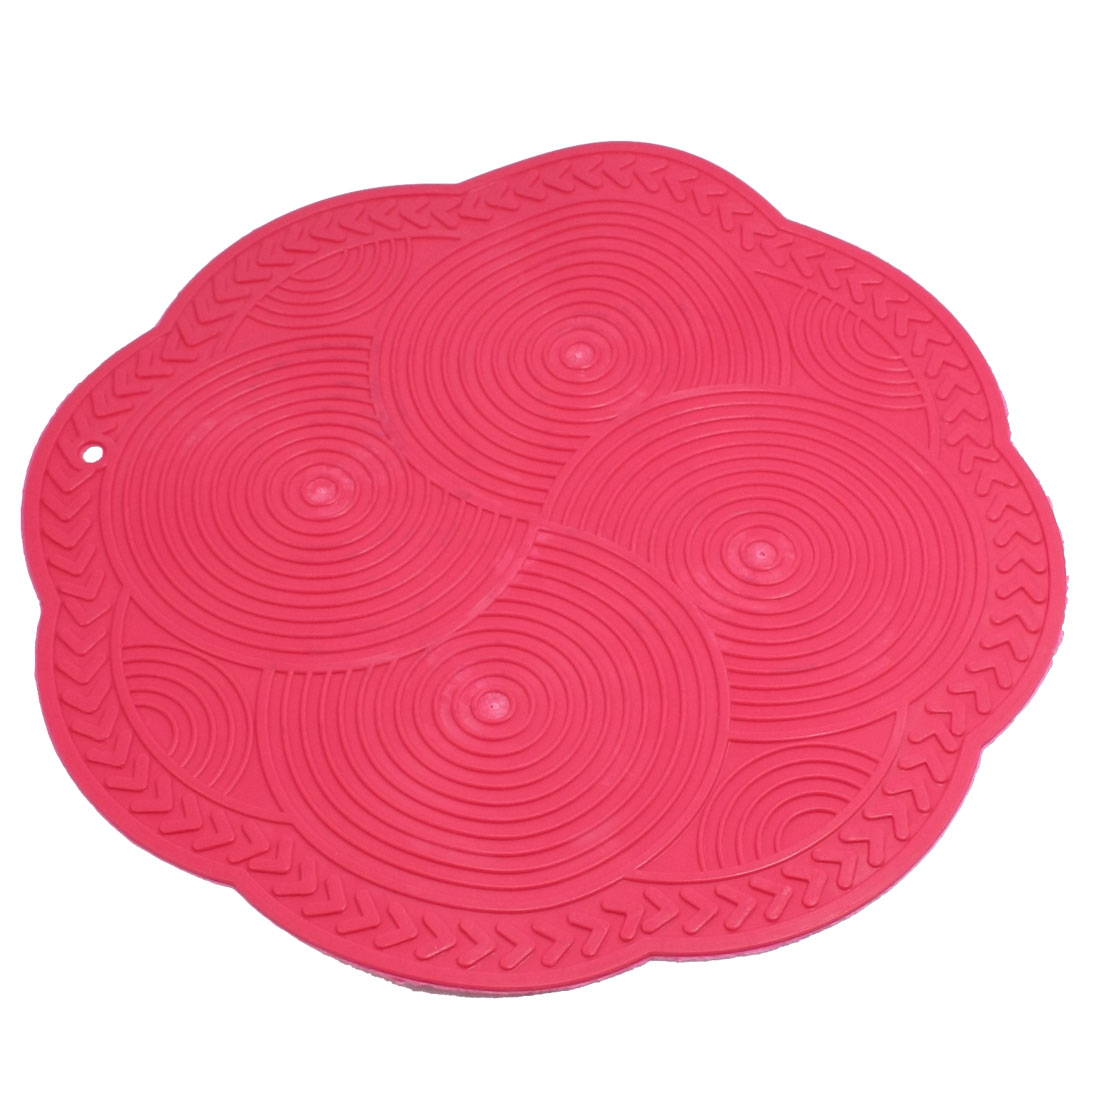 Kitchen Soft Plastic Amaranth Flower Shaped Heat Insulation Felt Pad Mat